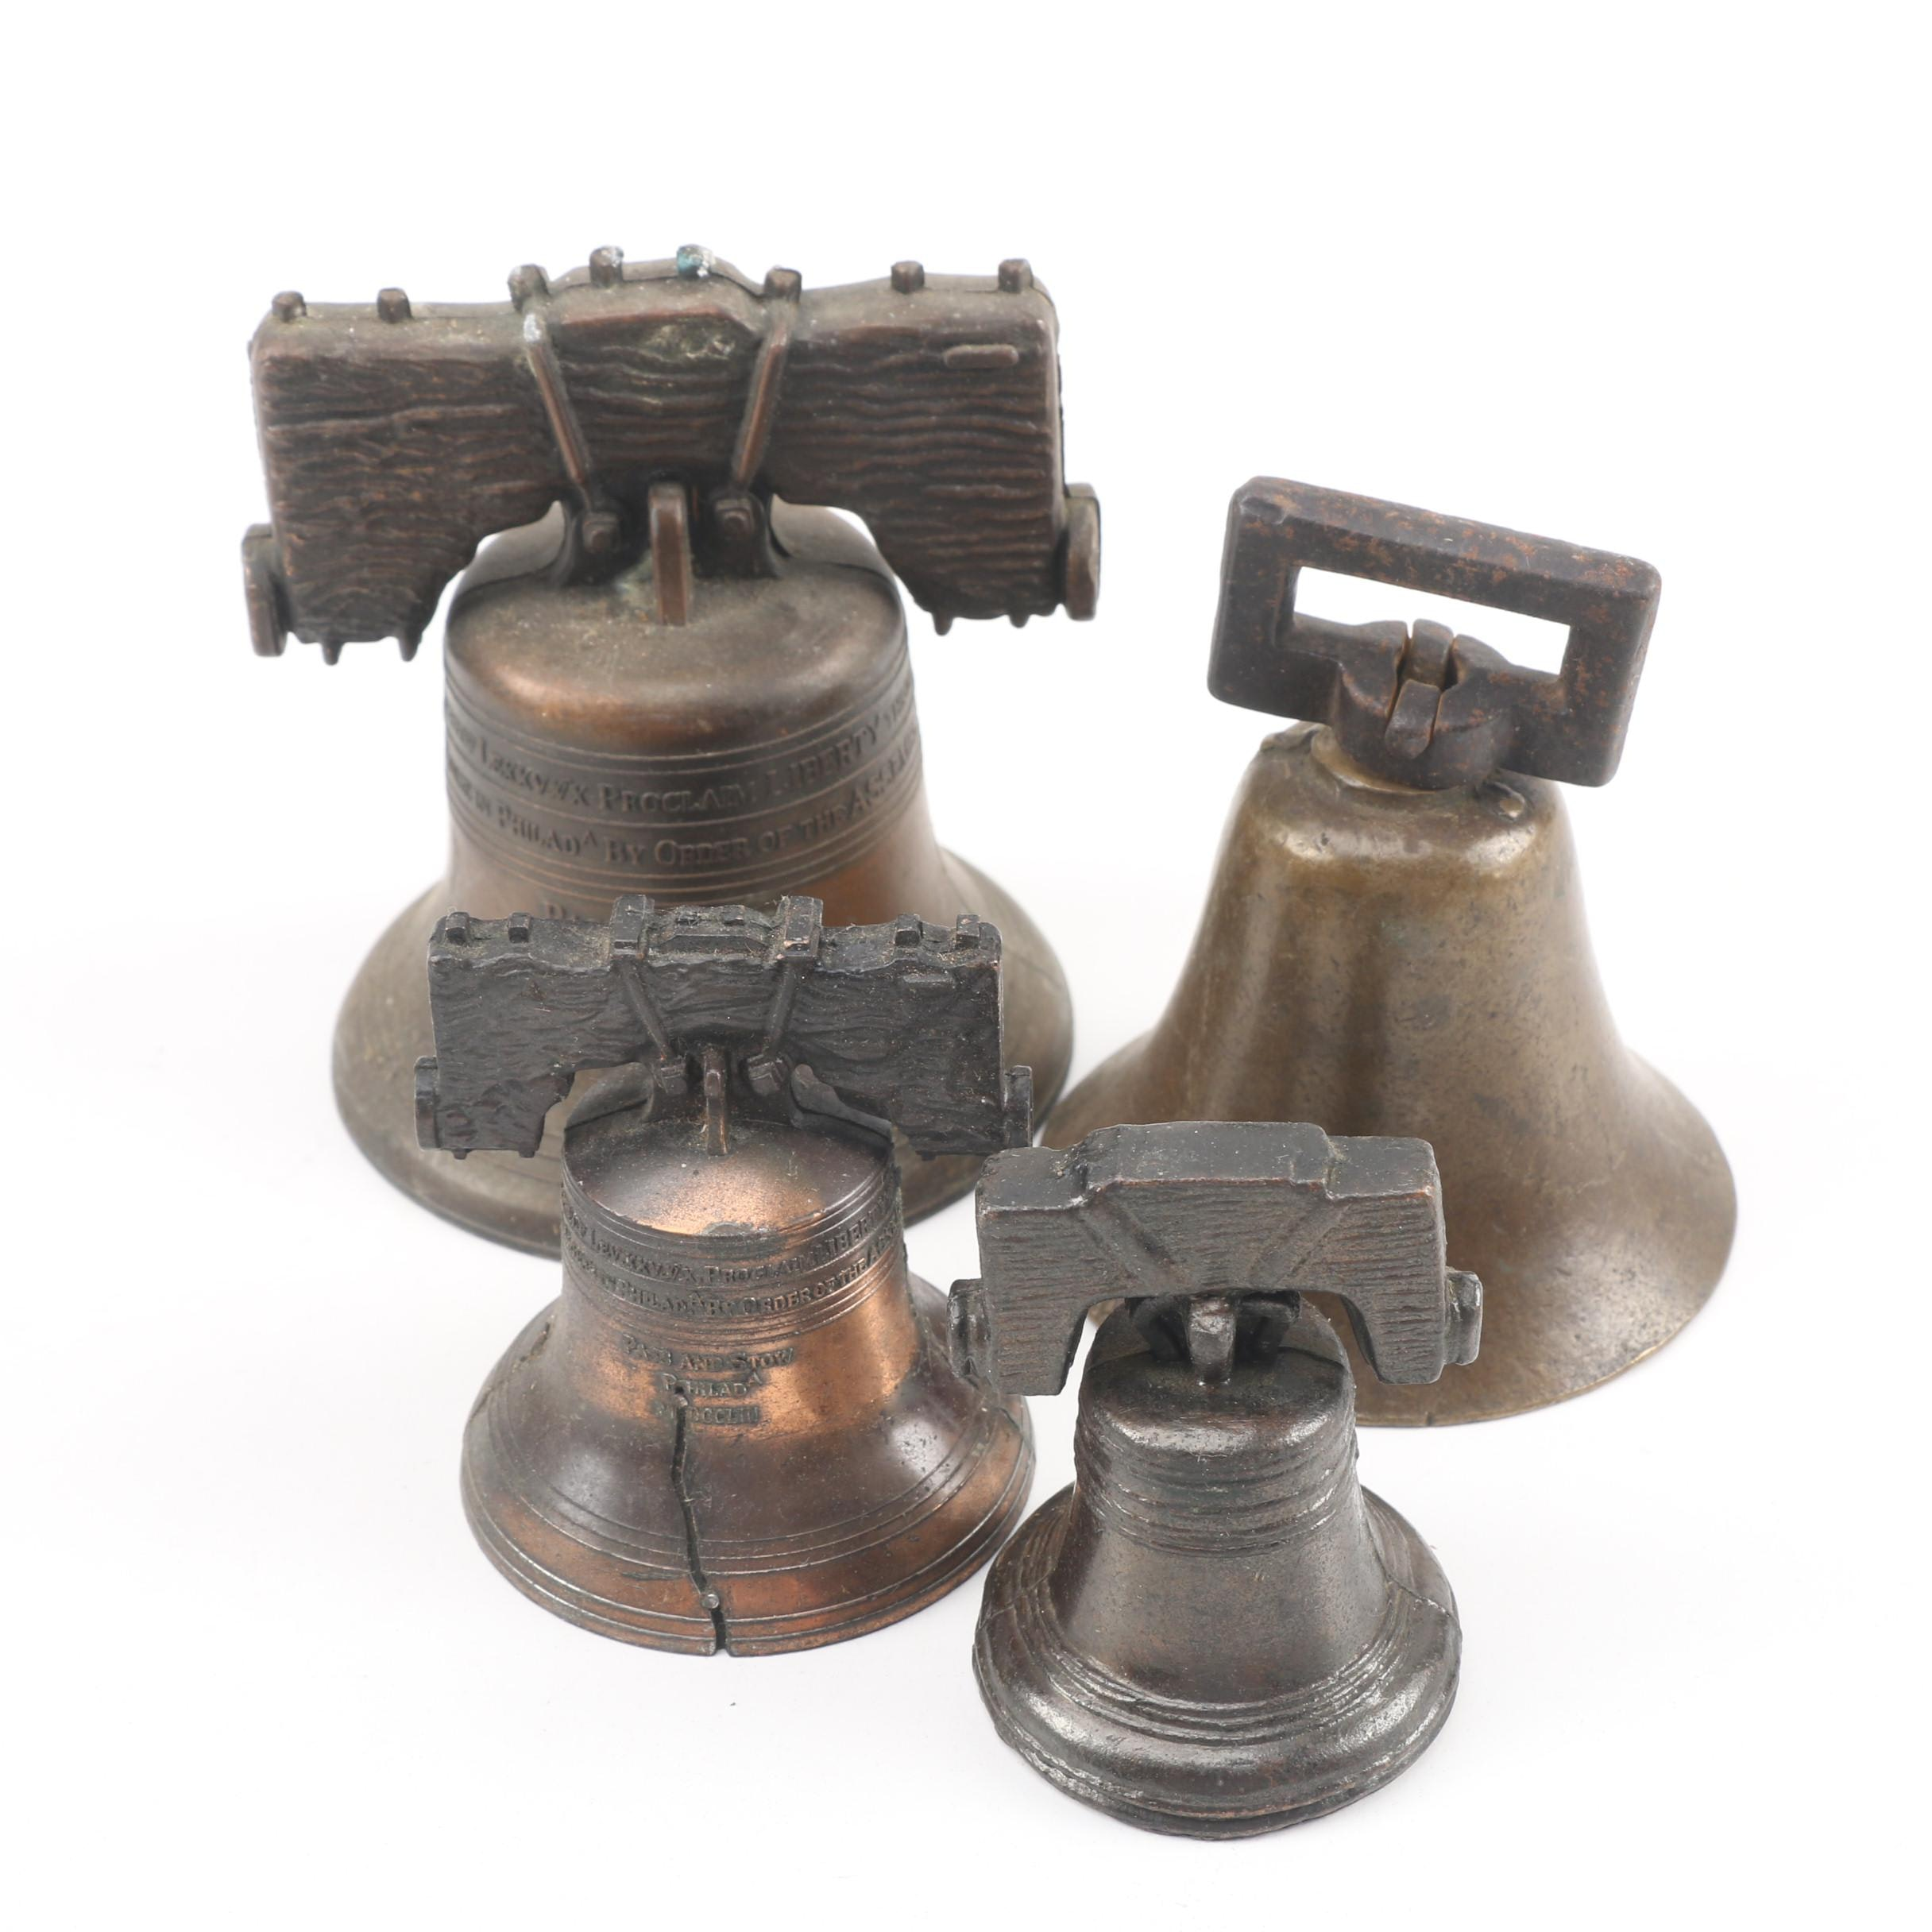 Vintage Replica Liberty Bells and Hanging Bell